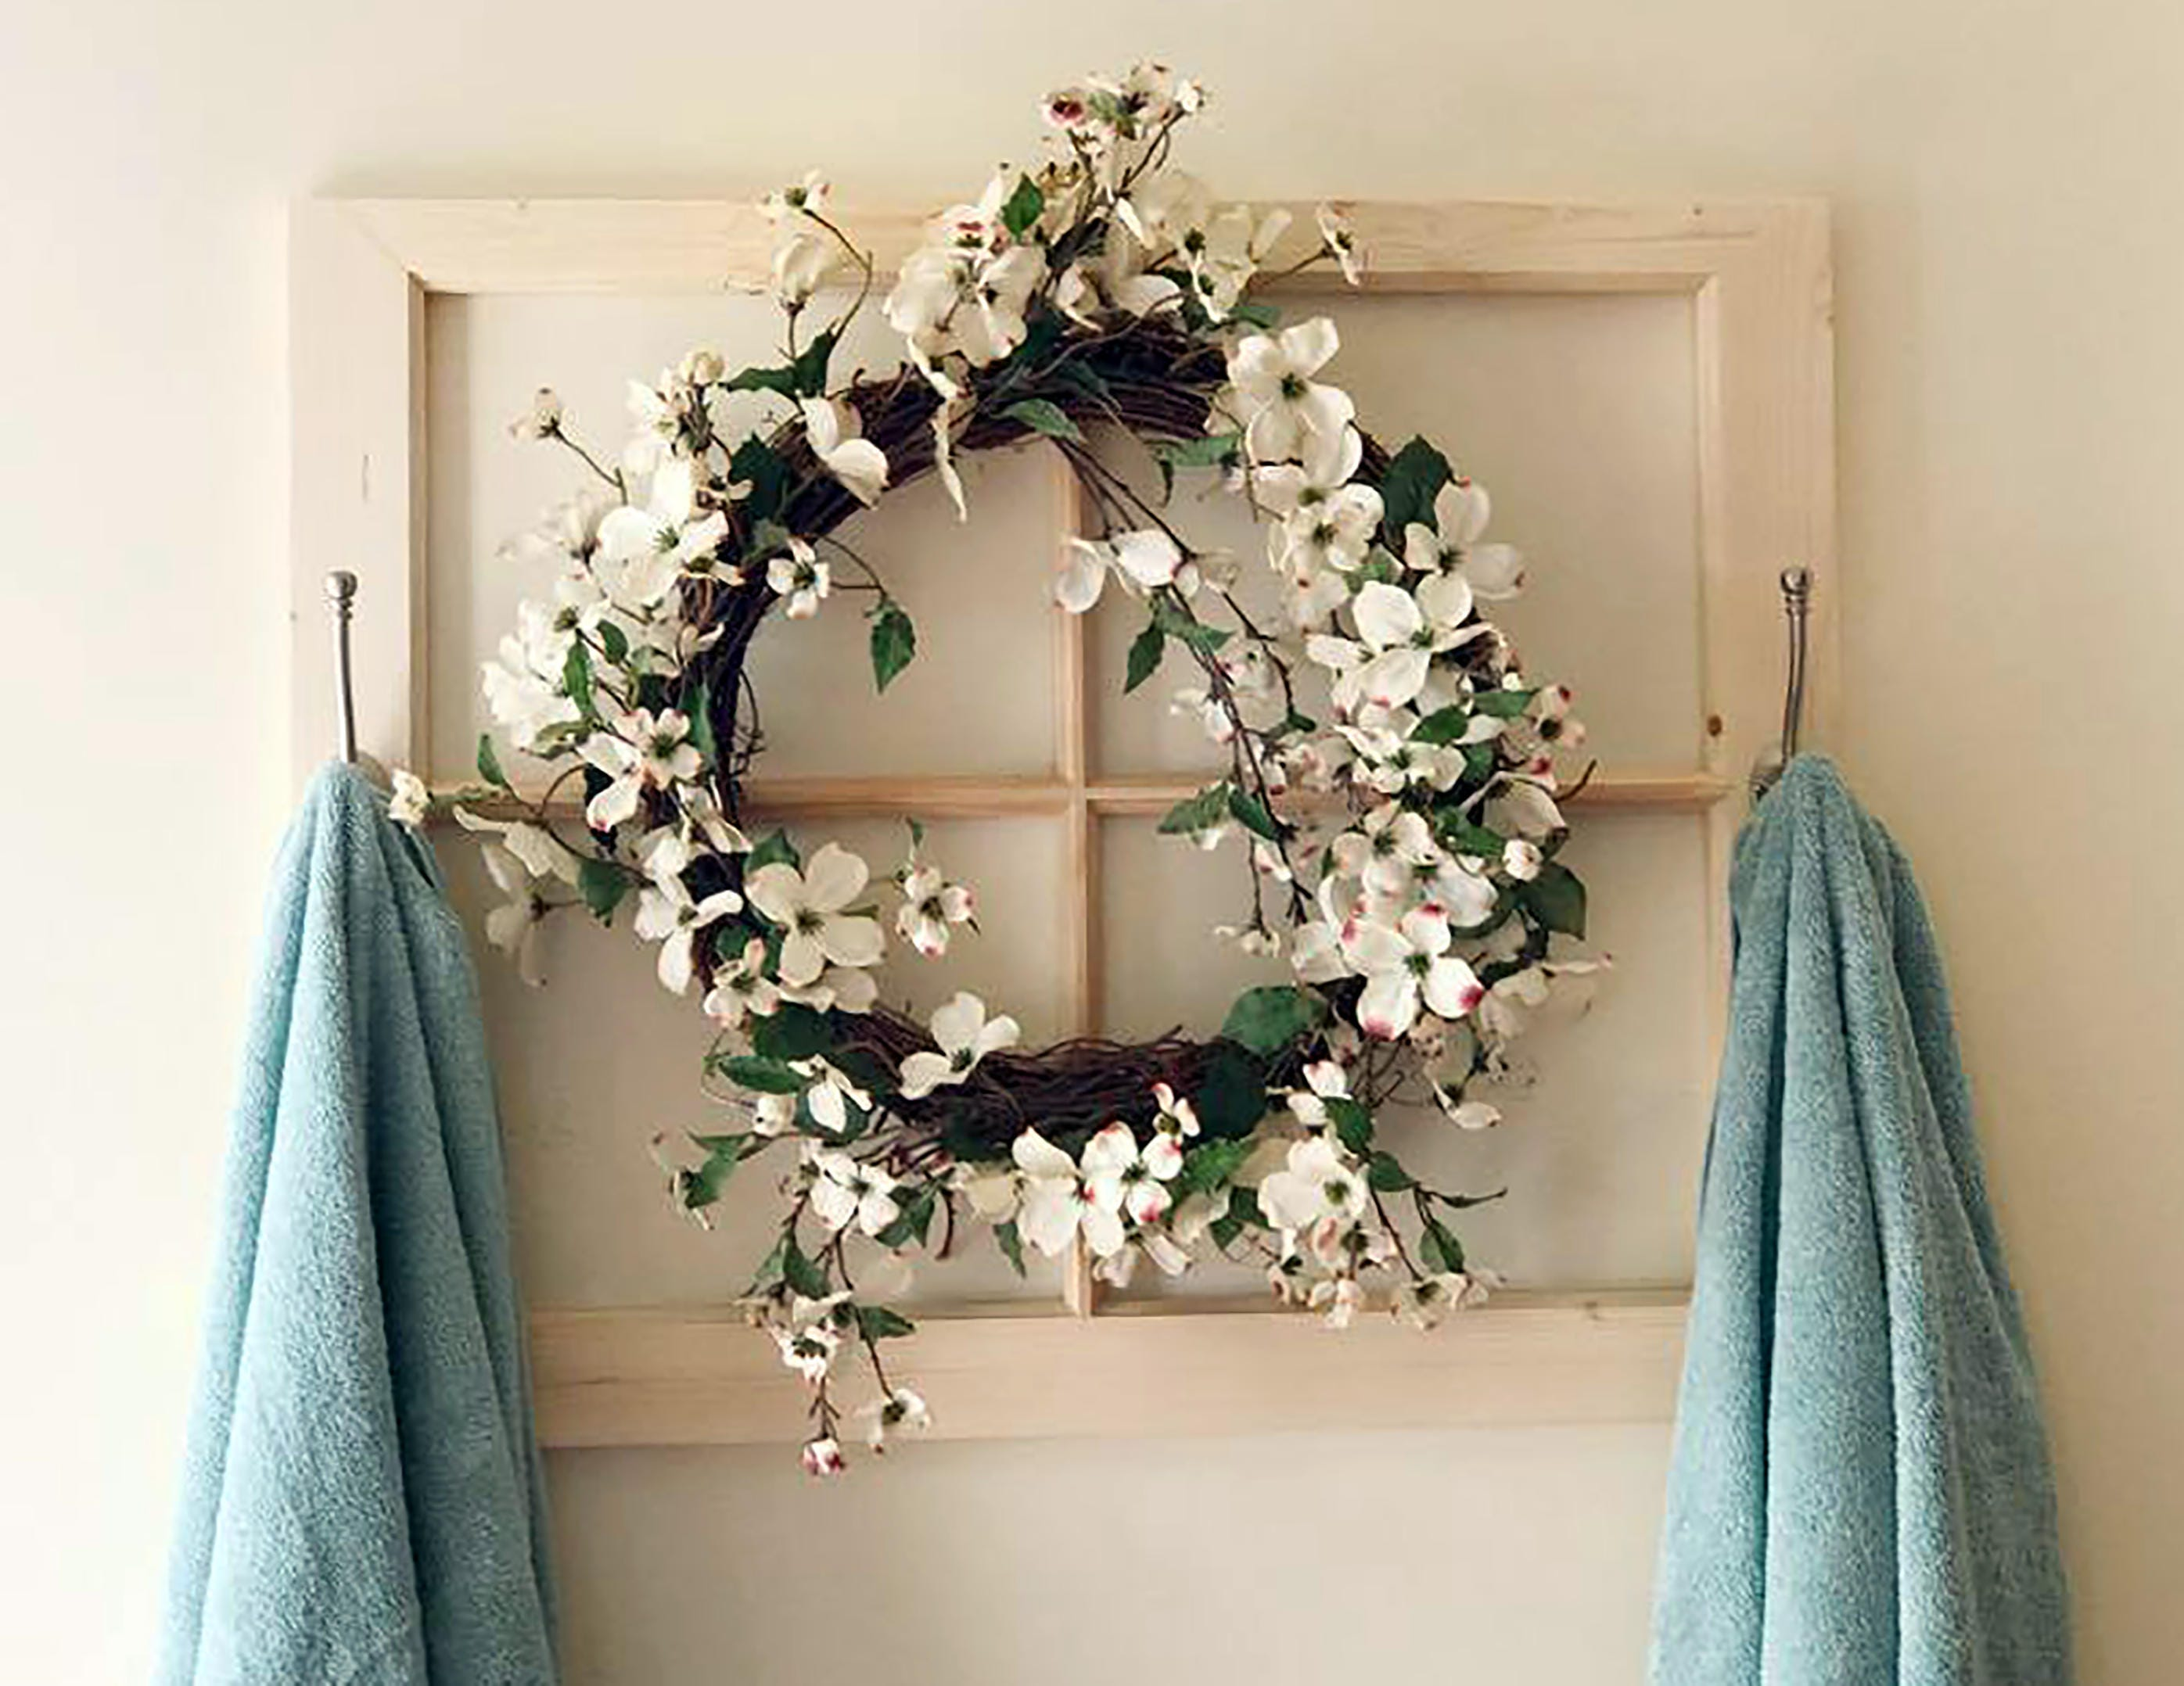 Towel Rack Bathroom Decor Bathroom Towel Rack Rustic Towel